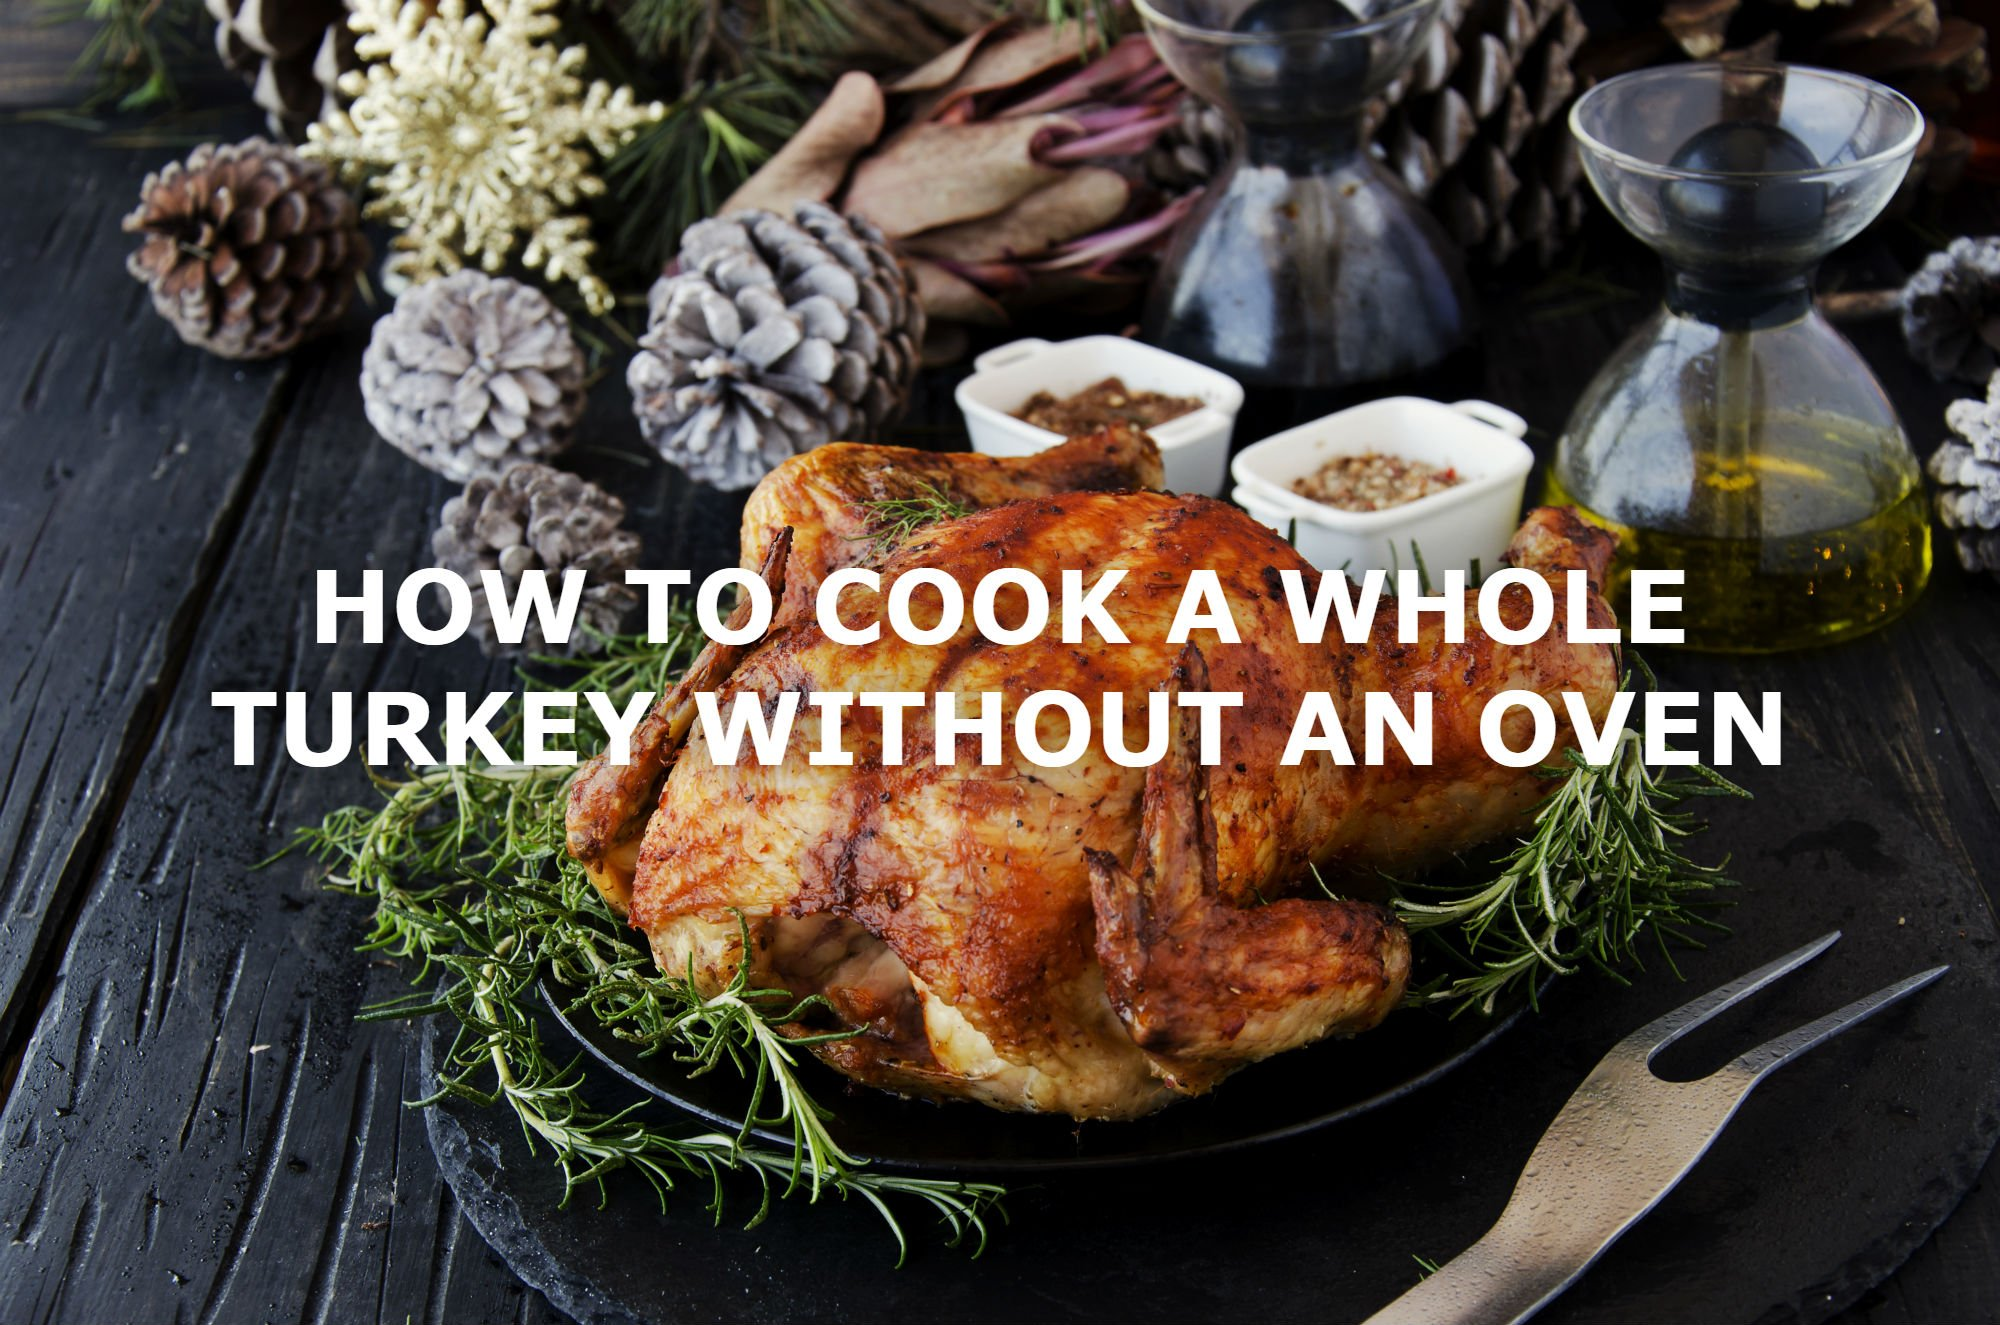 HOW TO COOK A WHOLE TURKEY WITHOUT AN OVEN